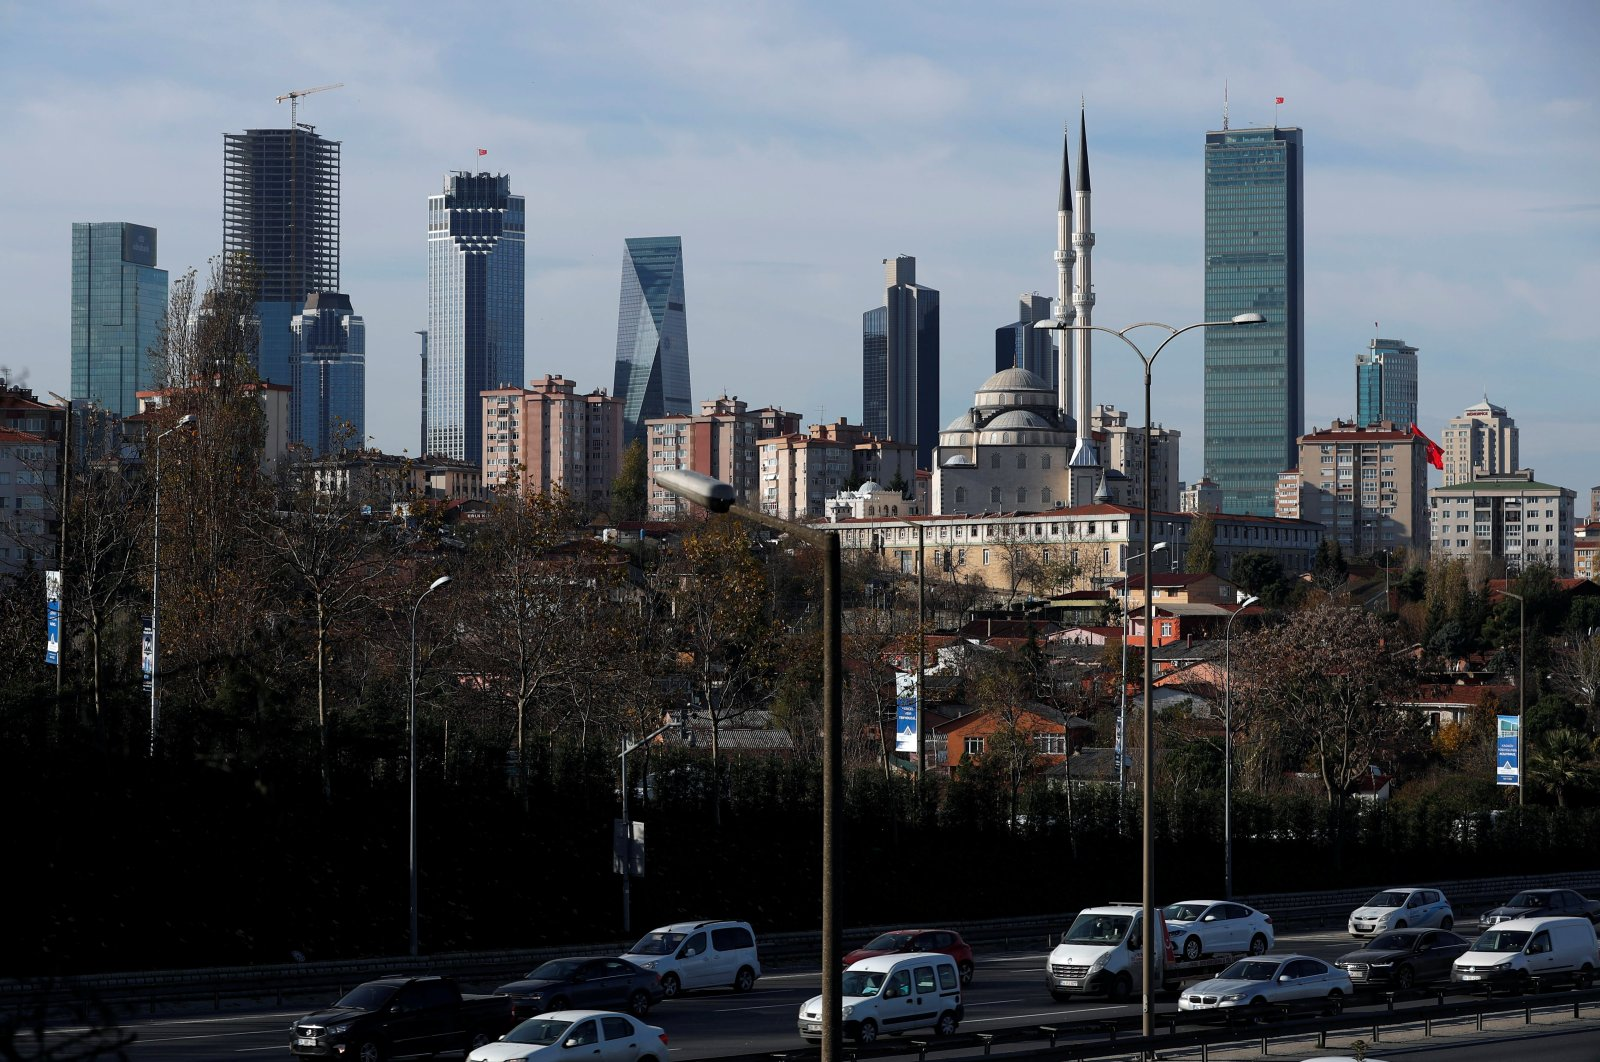 The business and financial district of Levent, which hosts leading Turkish banks' and companies' headquarters, is seen behind a residential neighborhood in Istanbul, Turkey, Nov. 30, 2017. (Reuters Photo)